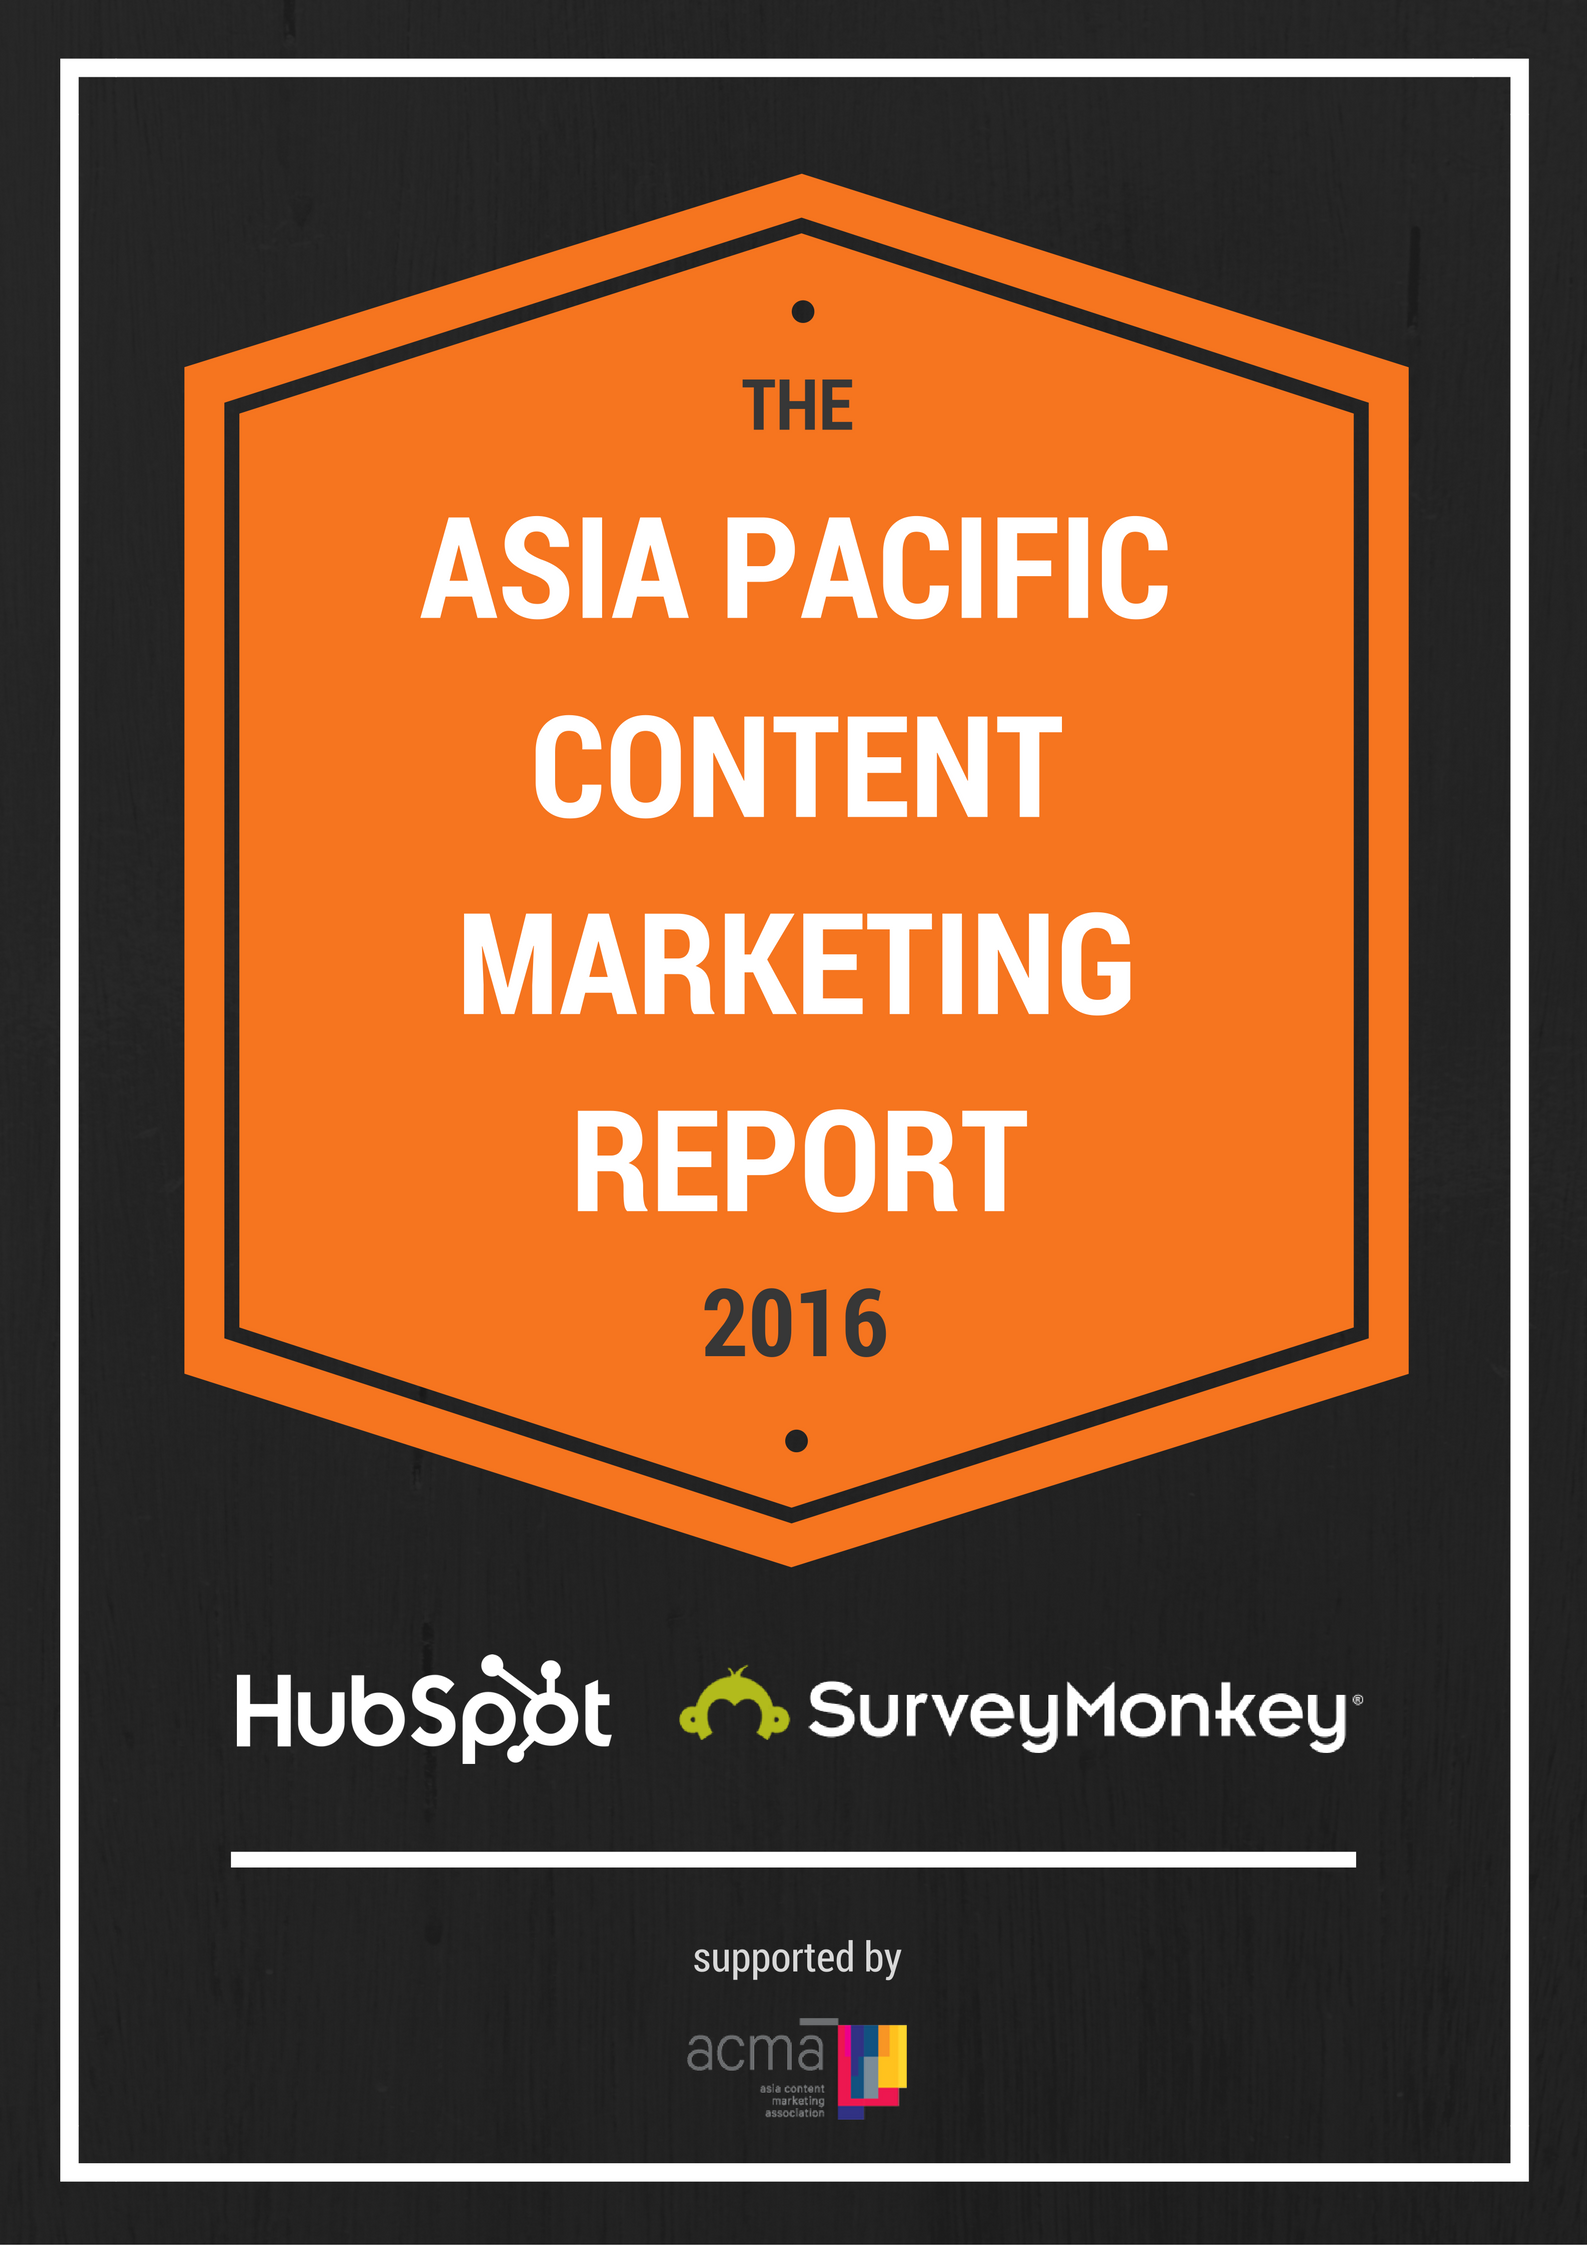 Asia_Pacific_Content_Marketing_Report_2016